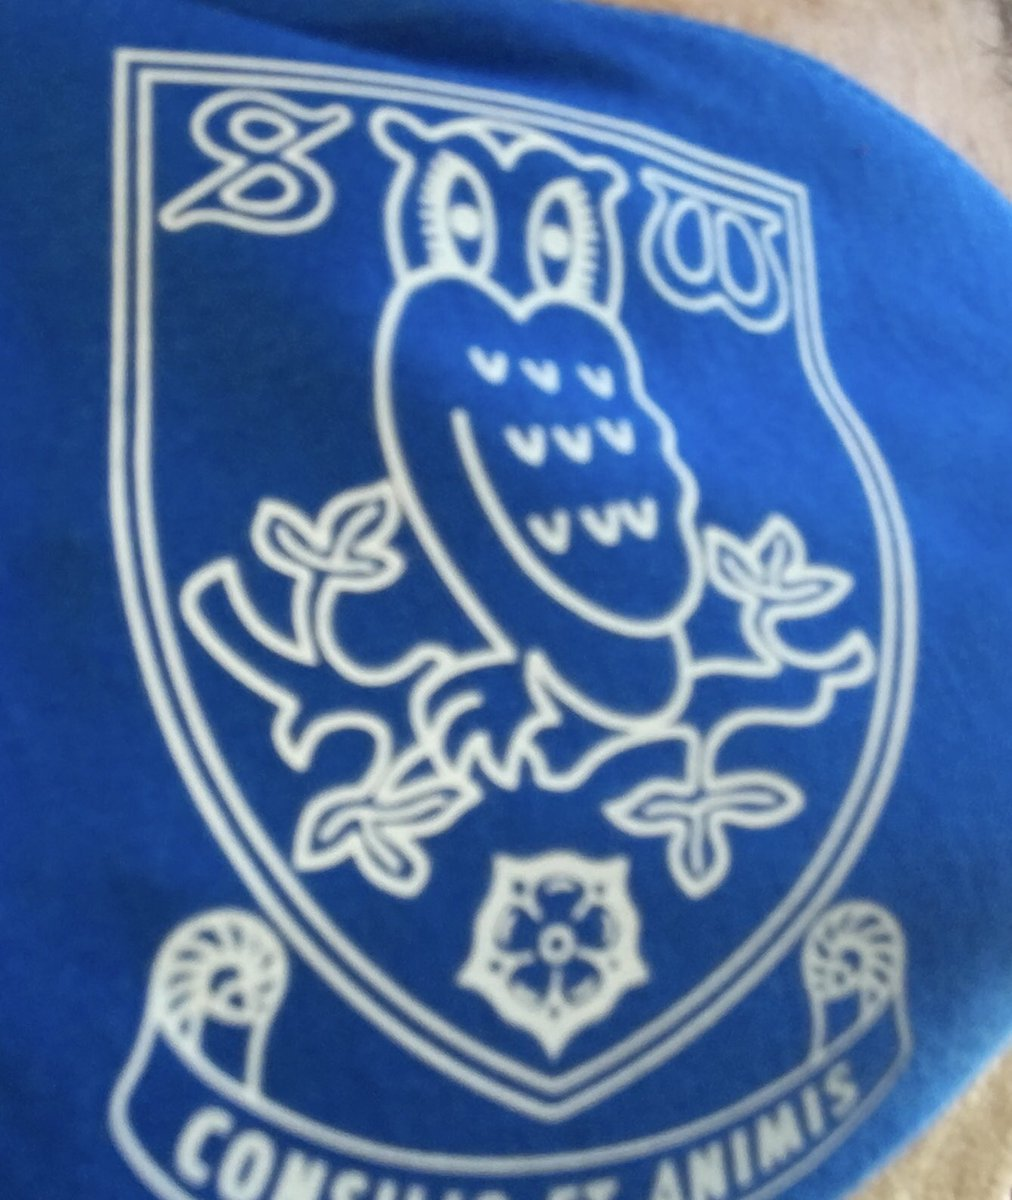 Once more unto.....Wednesday face covering at the ready #swfc #wawaw https://t.co/telqjUZAsH